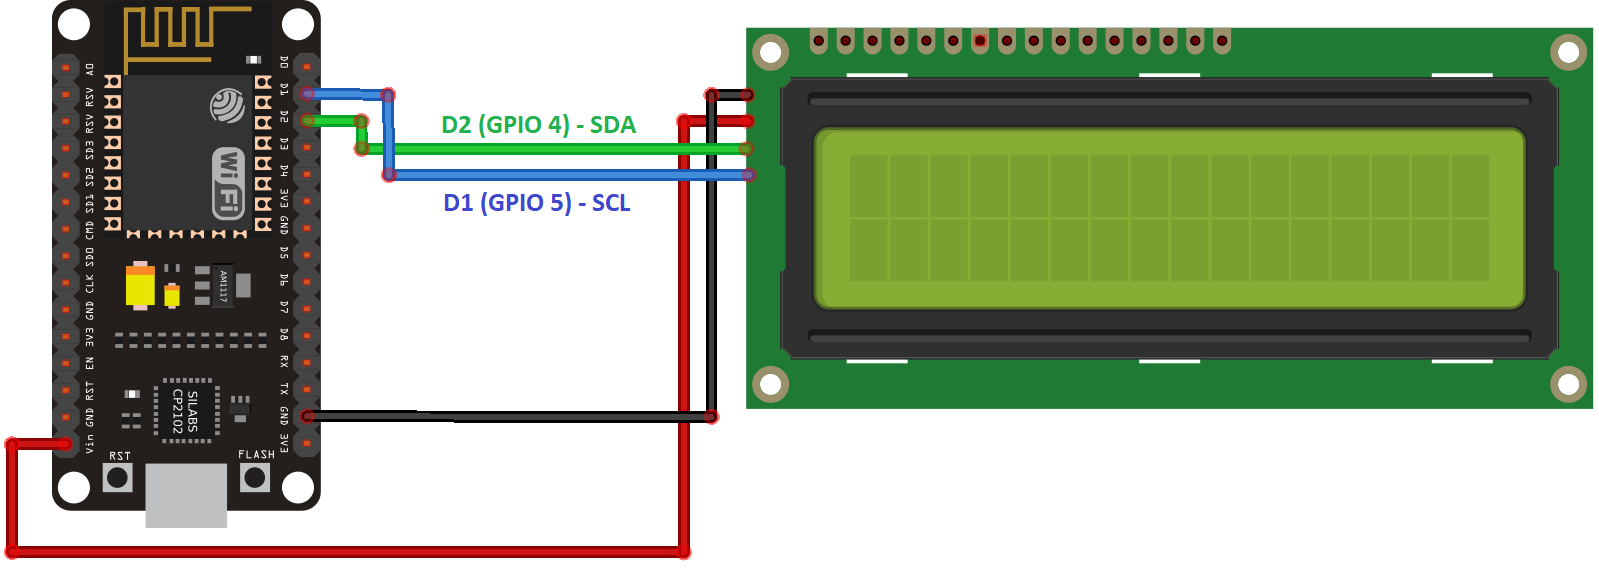 Wire Diagram 4 Pin Lcd Detailed Schematics Rocker Switch Wiring How To Make A Bench Power Supply From An Old Atx I2c With Esp32 On Arduino Ide Esp8266 Compatible Random Nerd 15 Source